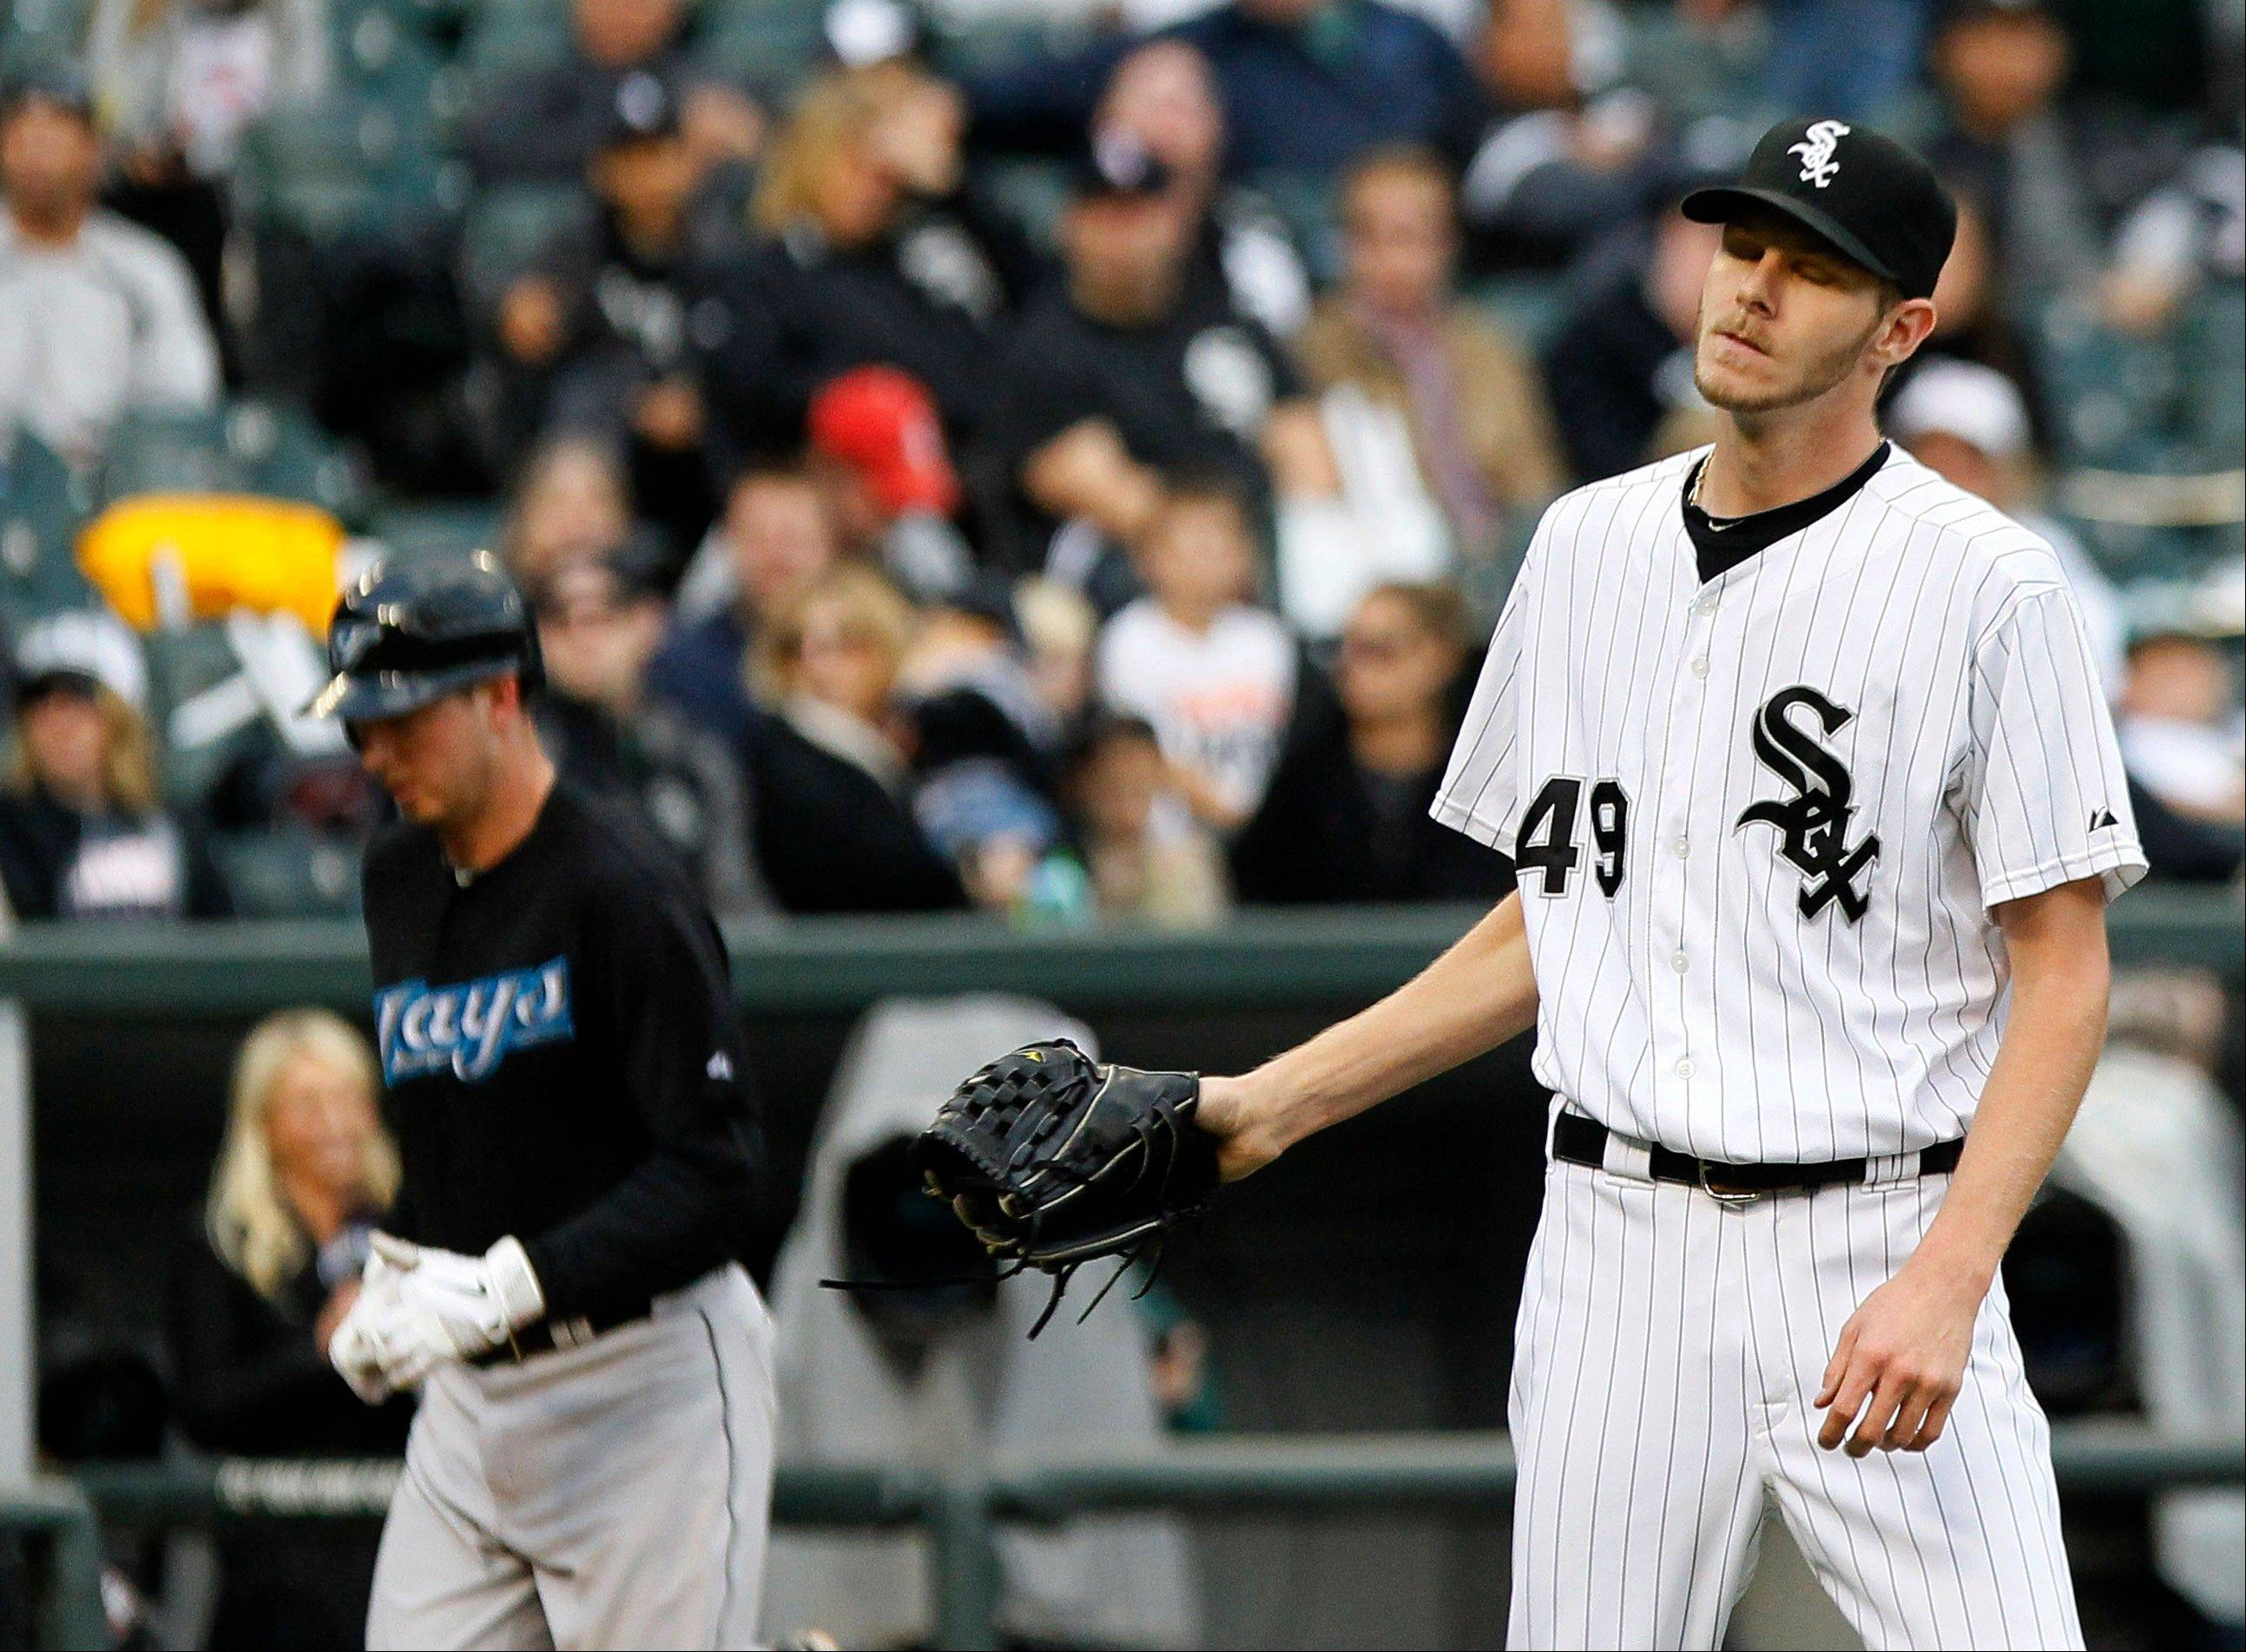 White Sox relief pitcher Chris Sale returns to the mound after walking in the go-ahead run, the Blue Jays' David Cooper, left, during the ninth inning Wednesday.